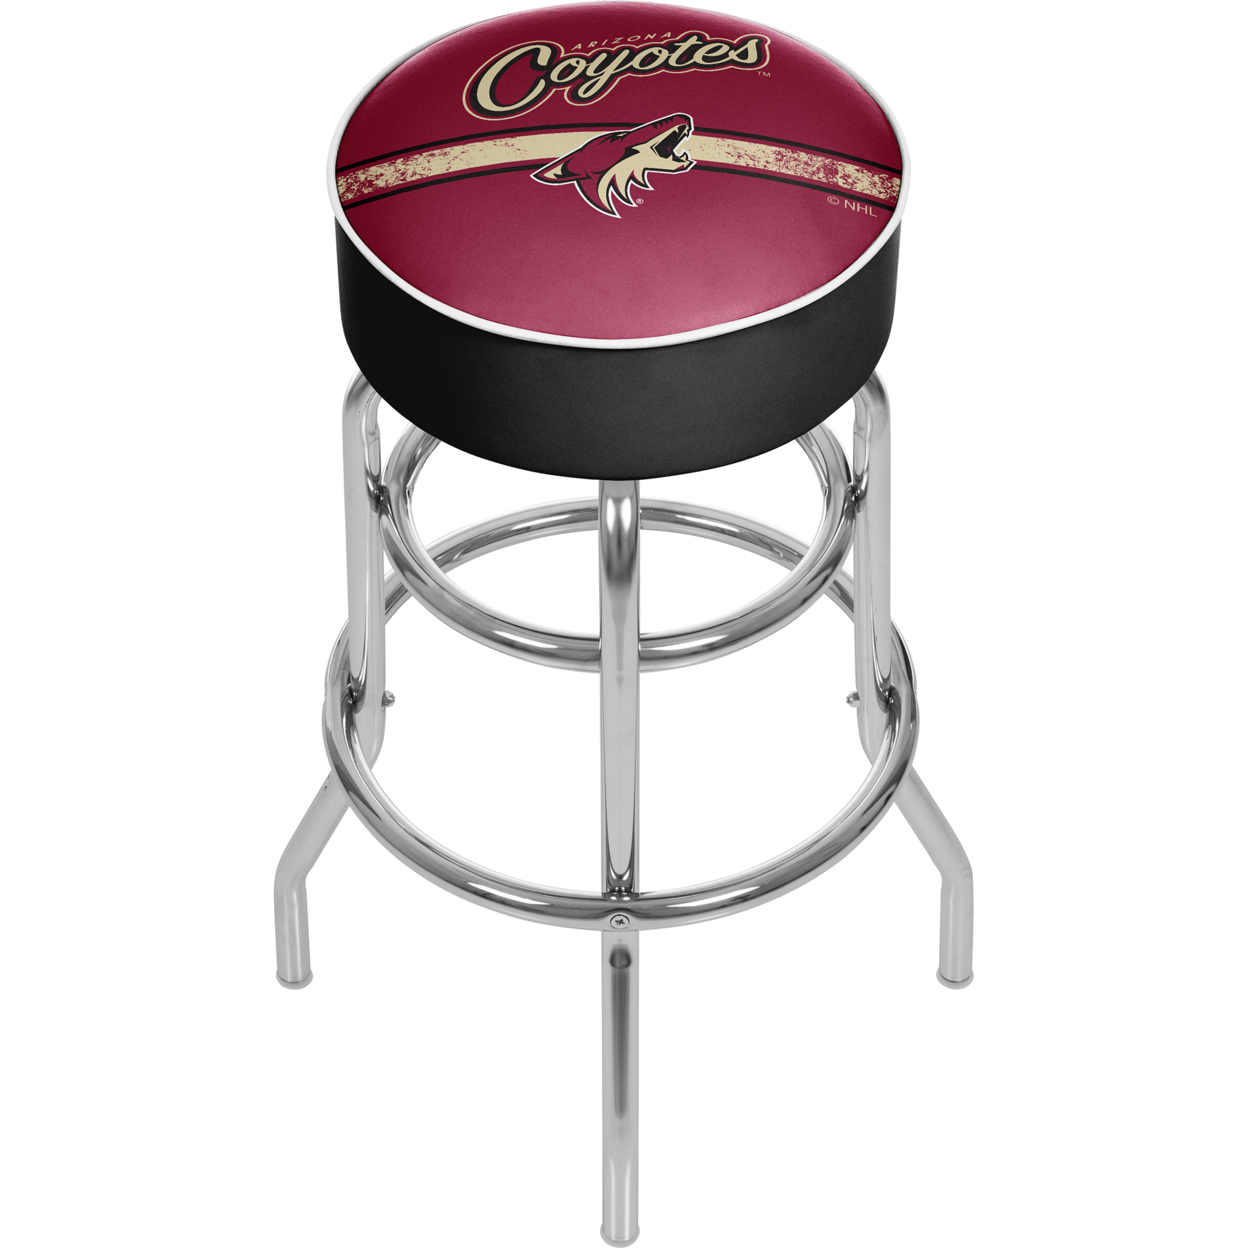 NHL Chrome 30 Inch Bar Stool with Swivel - Arizona Coyotes